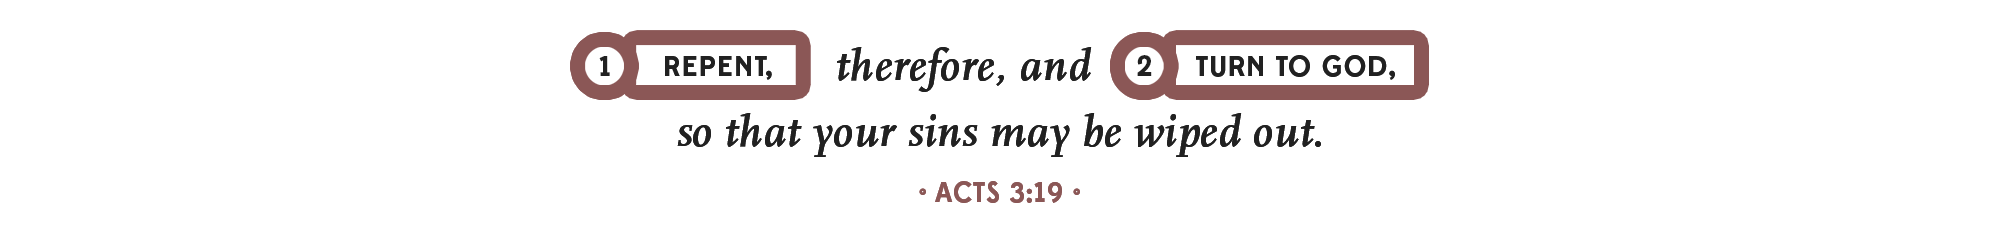 Salvation_Graphic_Acts3